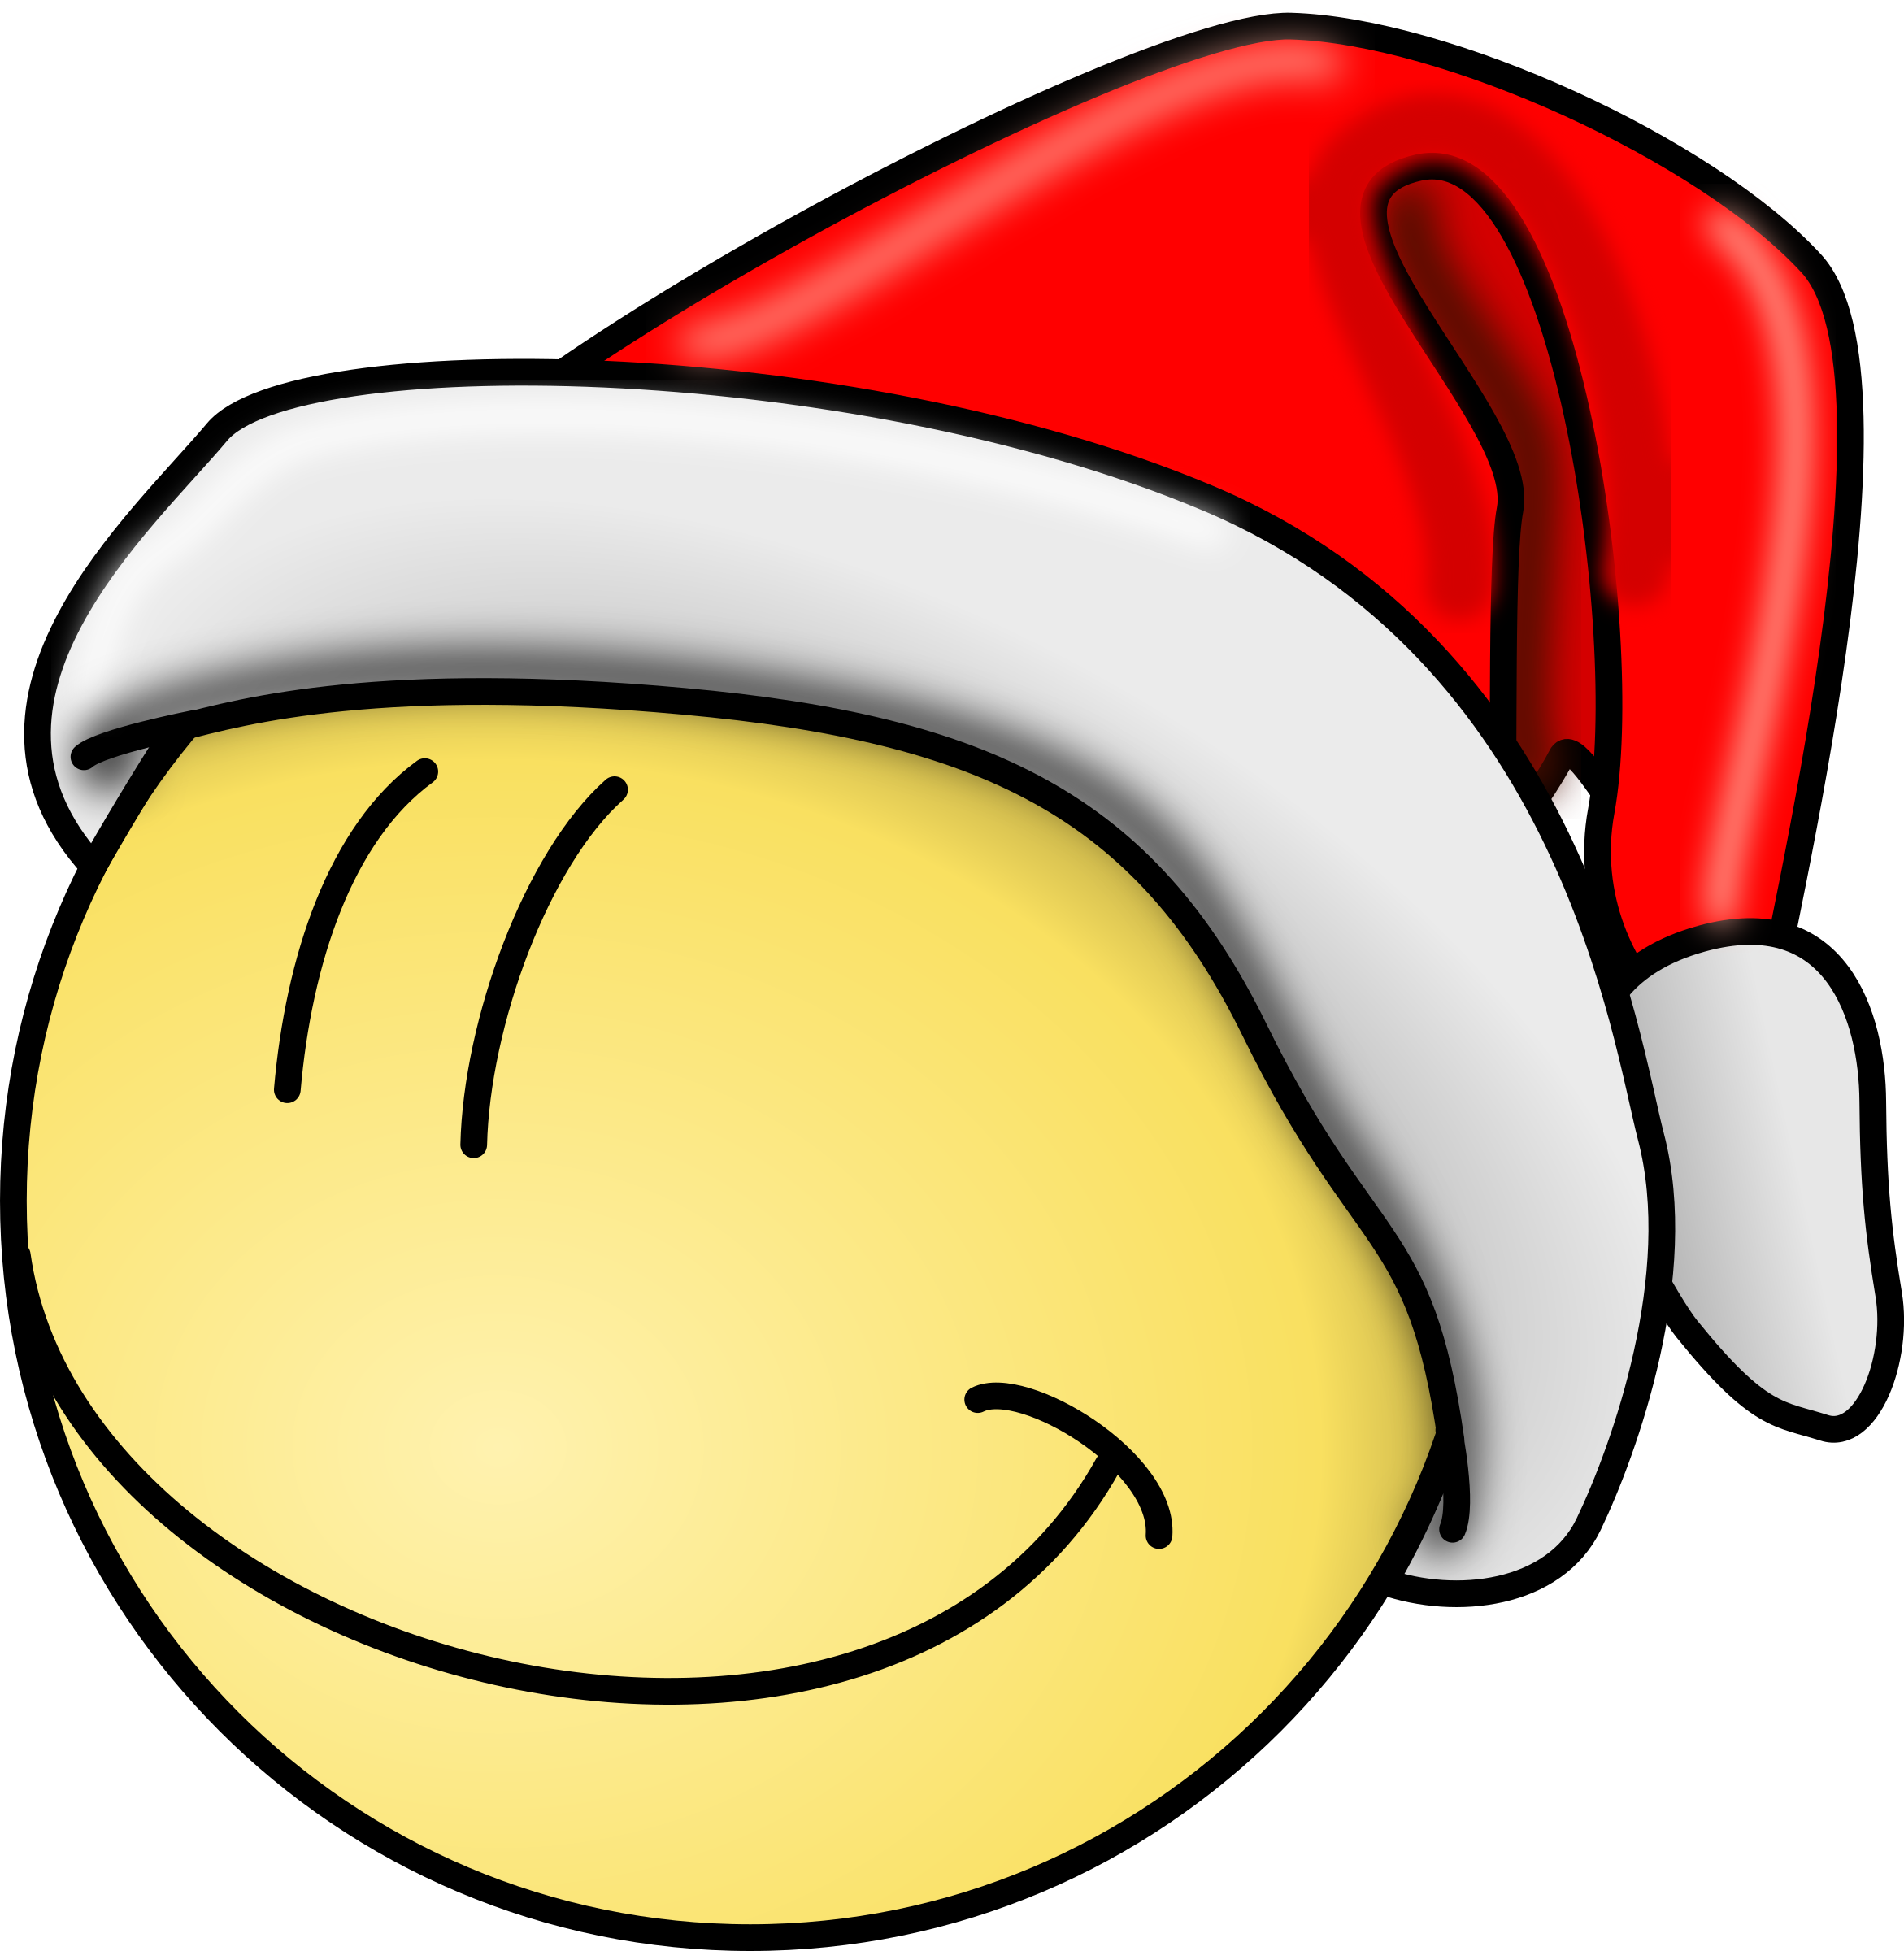 Cool clipart christmas. Smily face big image